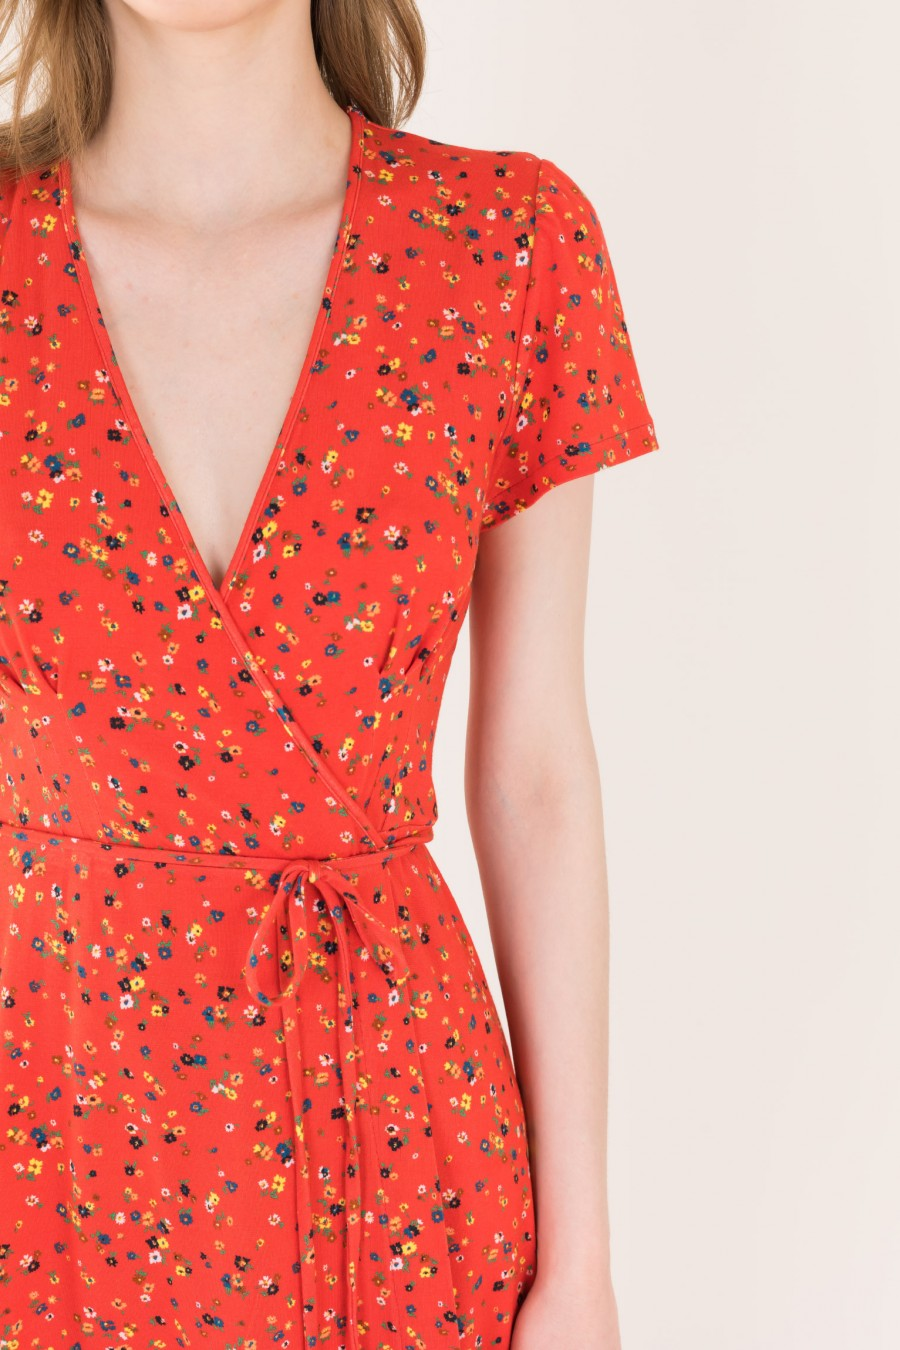 Flowered Wrapped dress